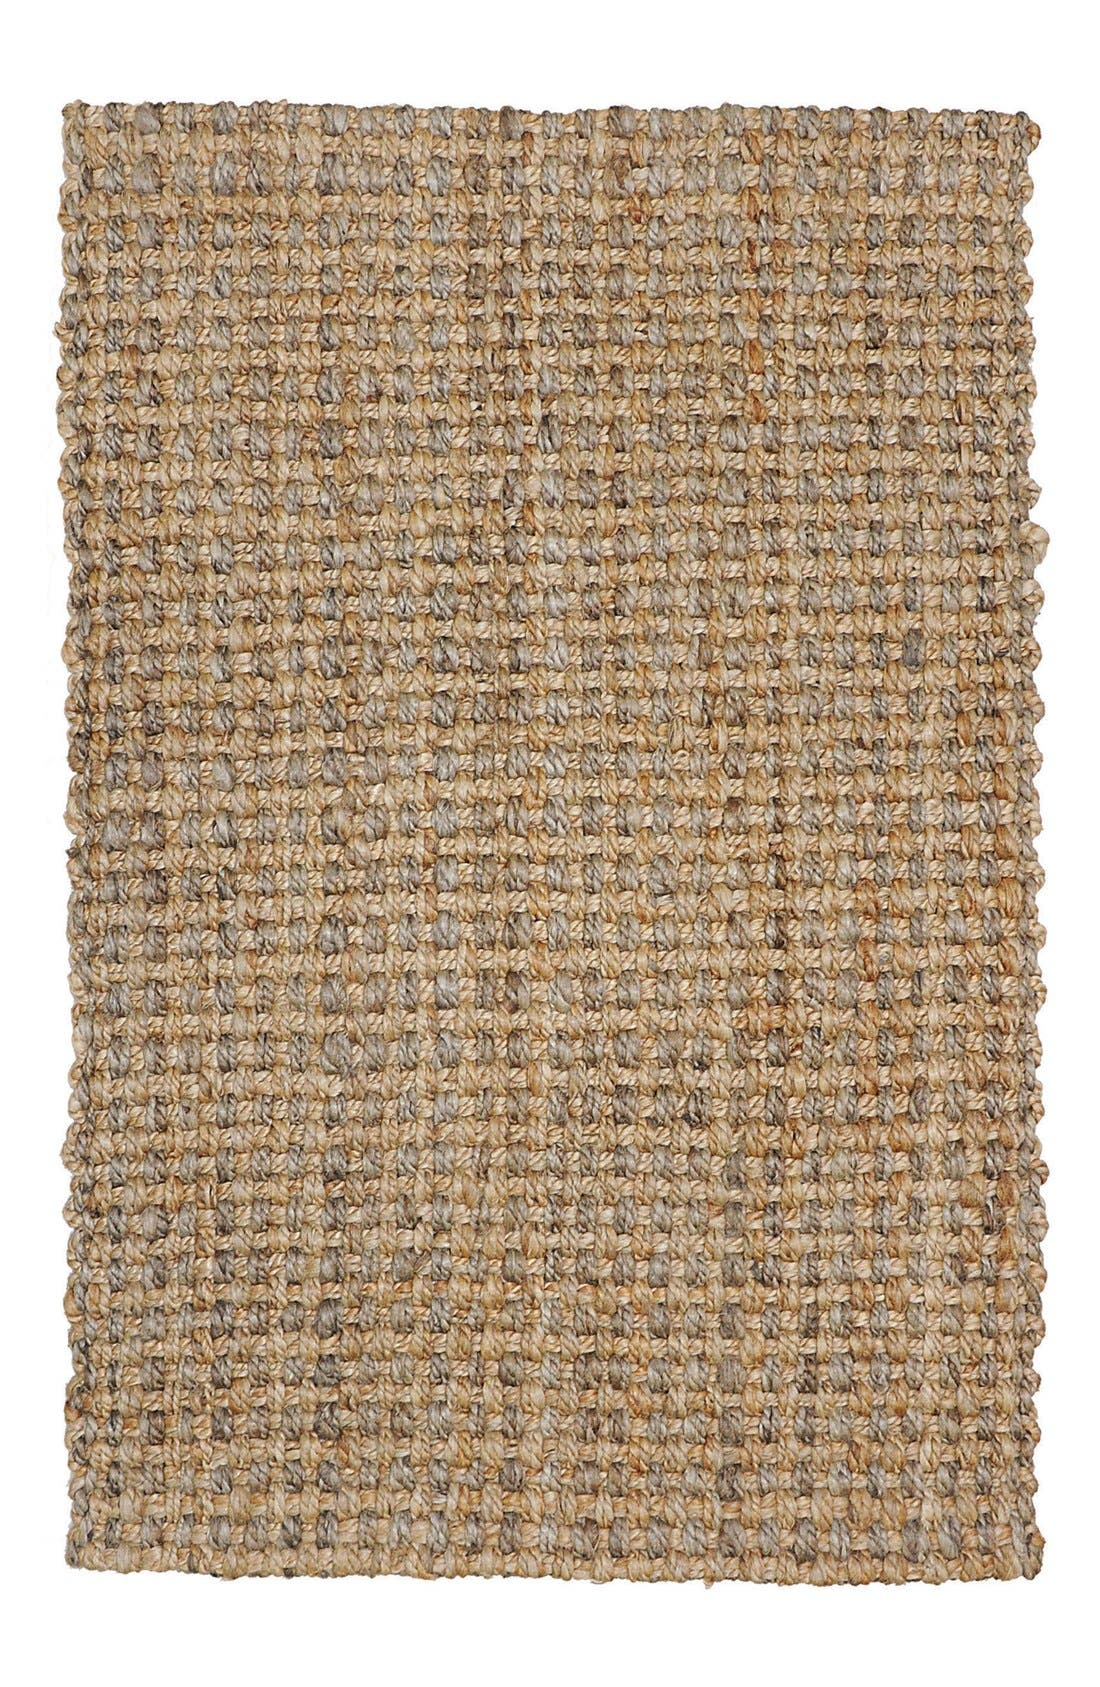 Panama Handwoven Rug,                         Main,                         color, Natural/ Grey